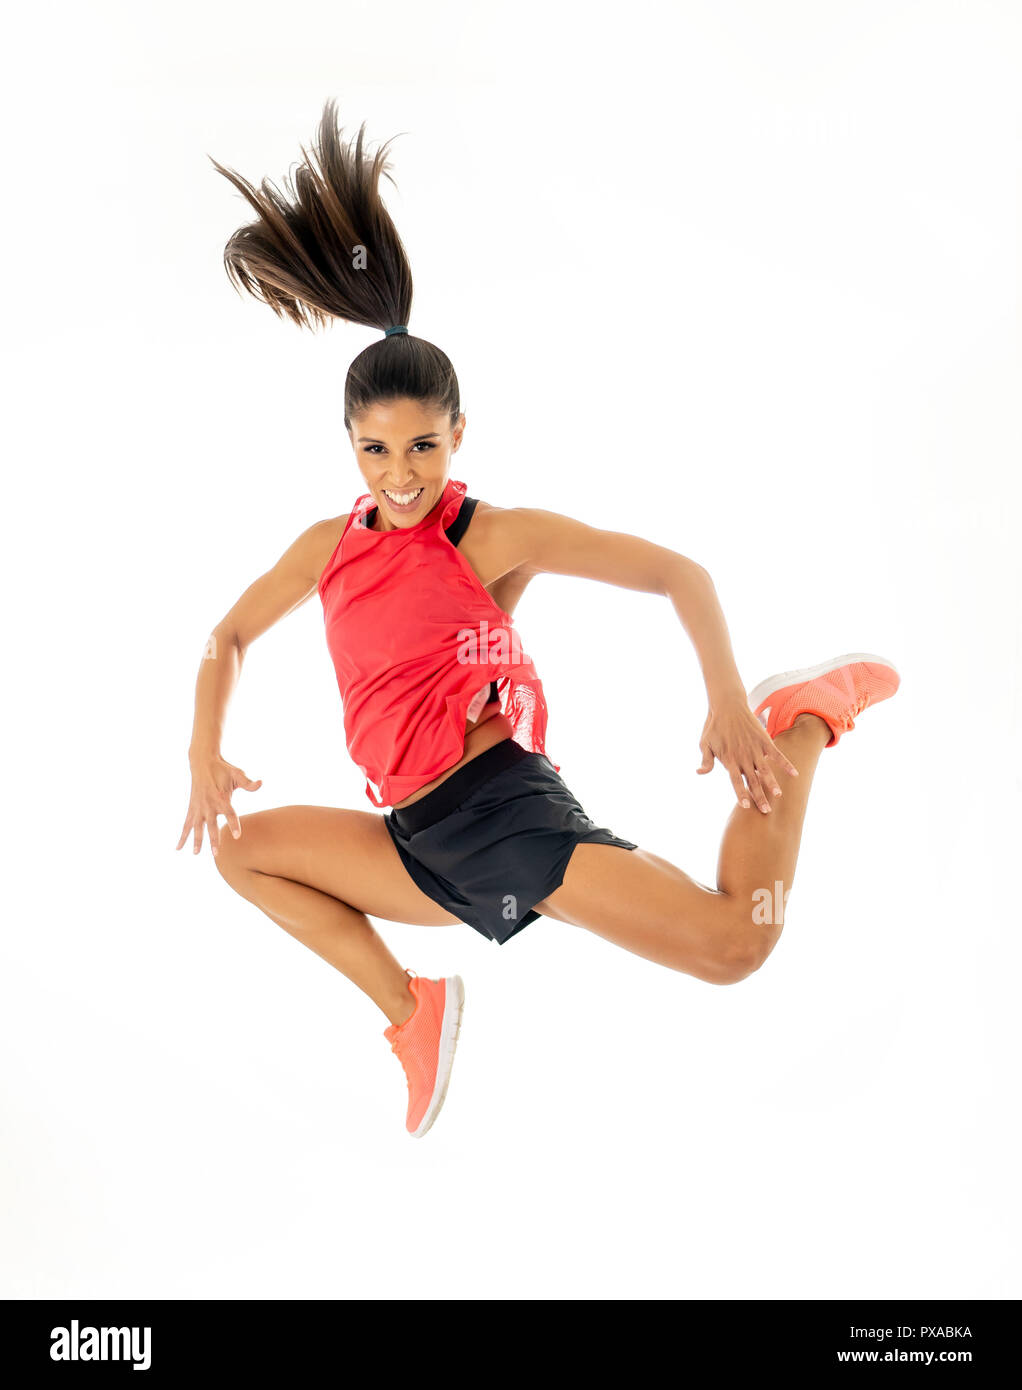 Portrait of full body sport woman jumping isolated on white background in Weight loss Happiness Fitness working out dancing Freedom Power Motion and p - Stock Image